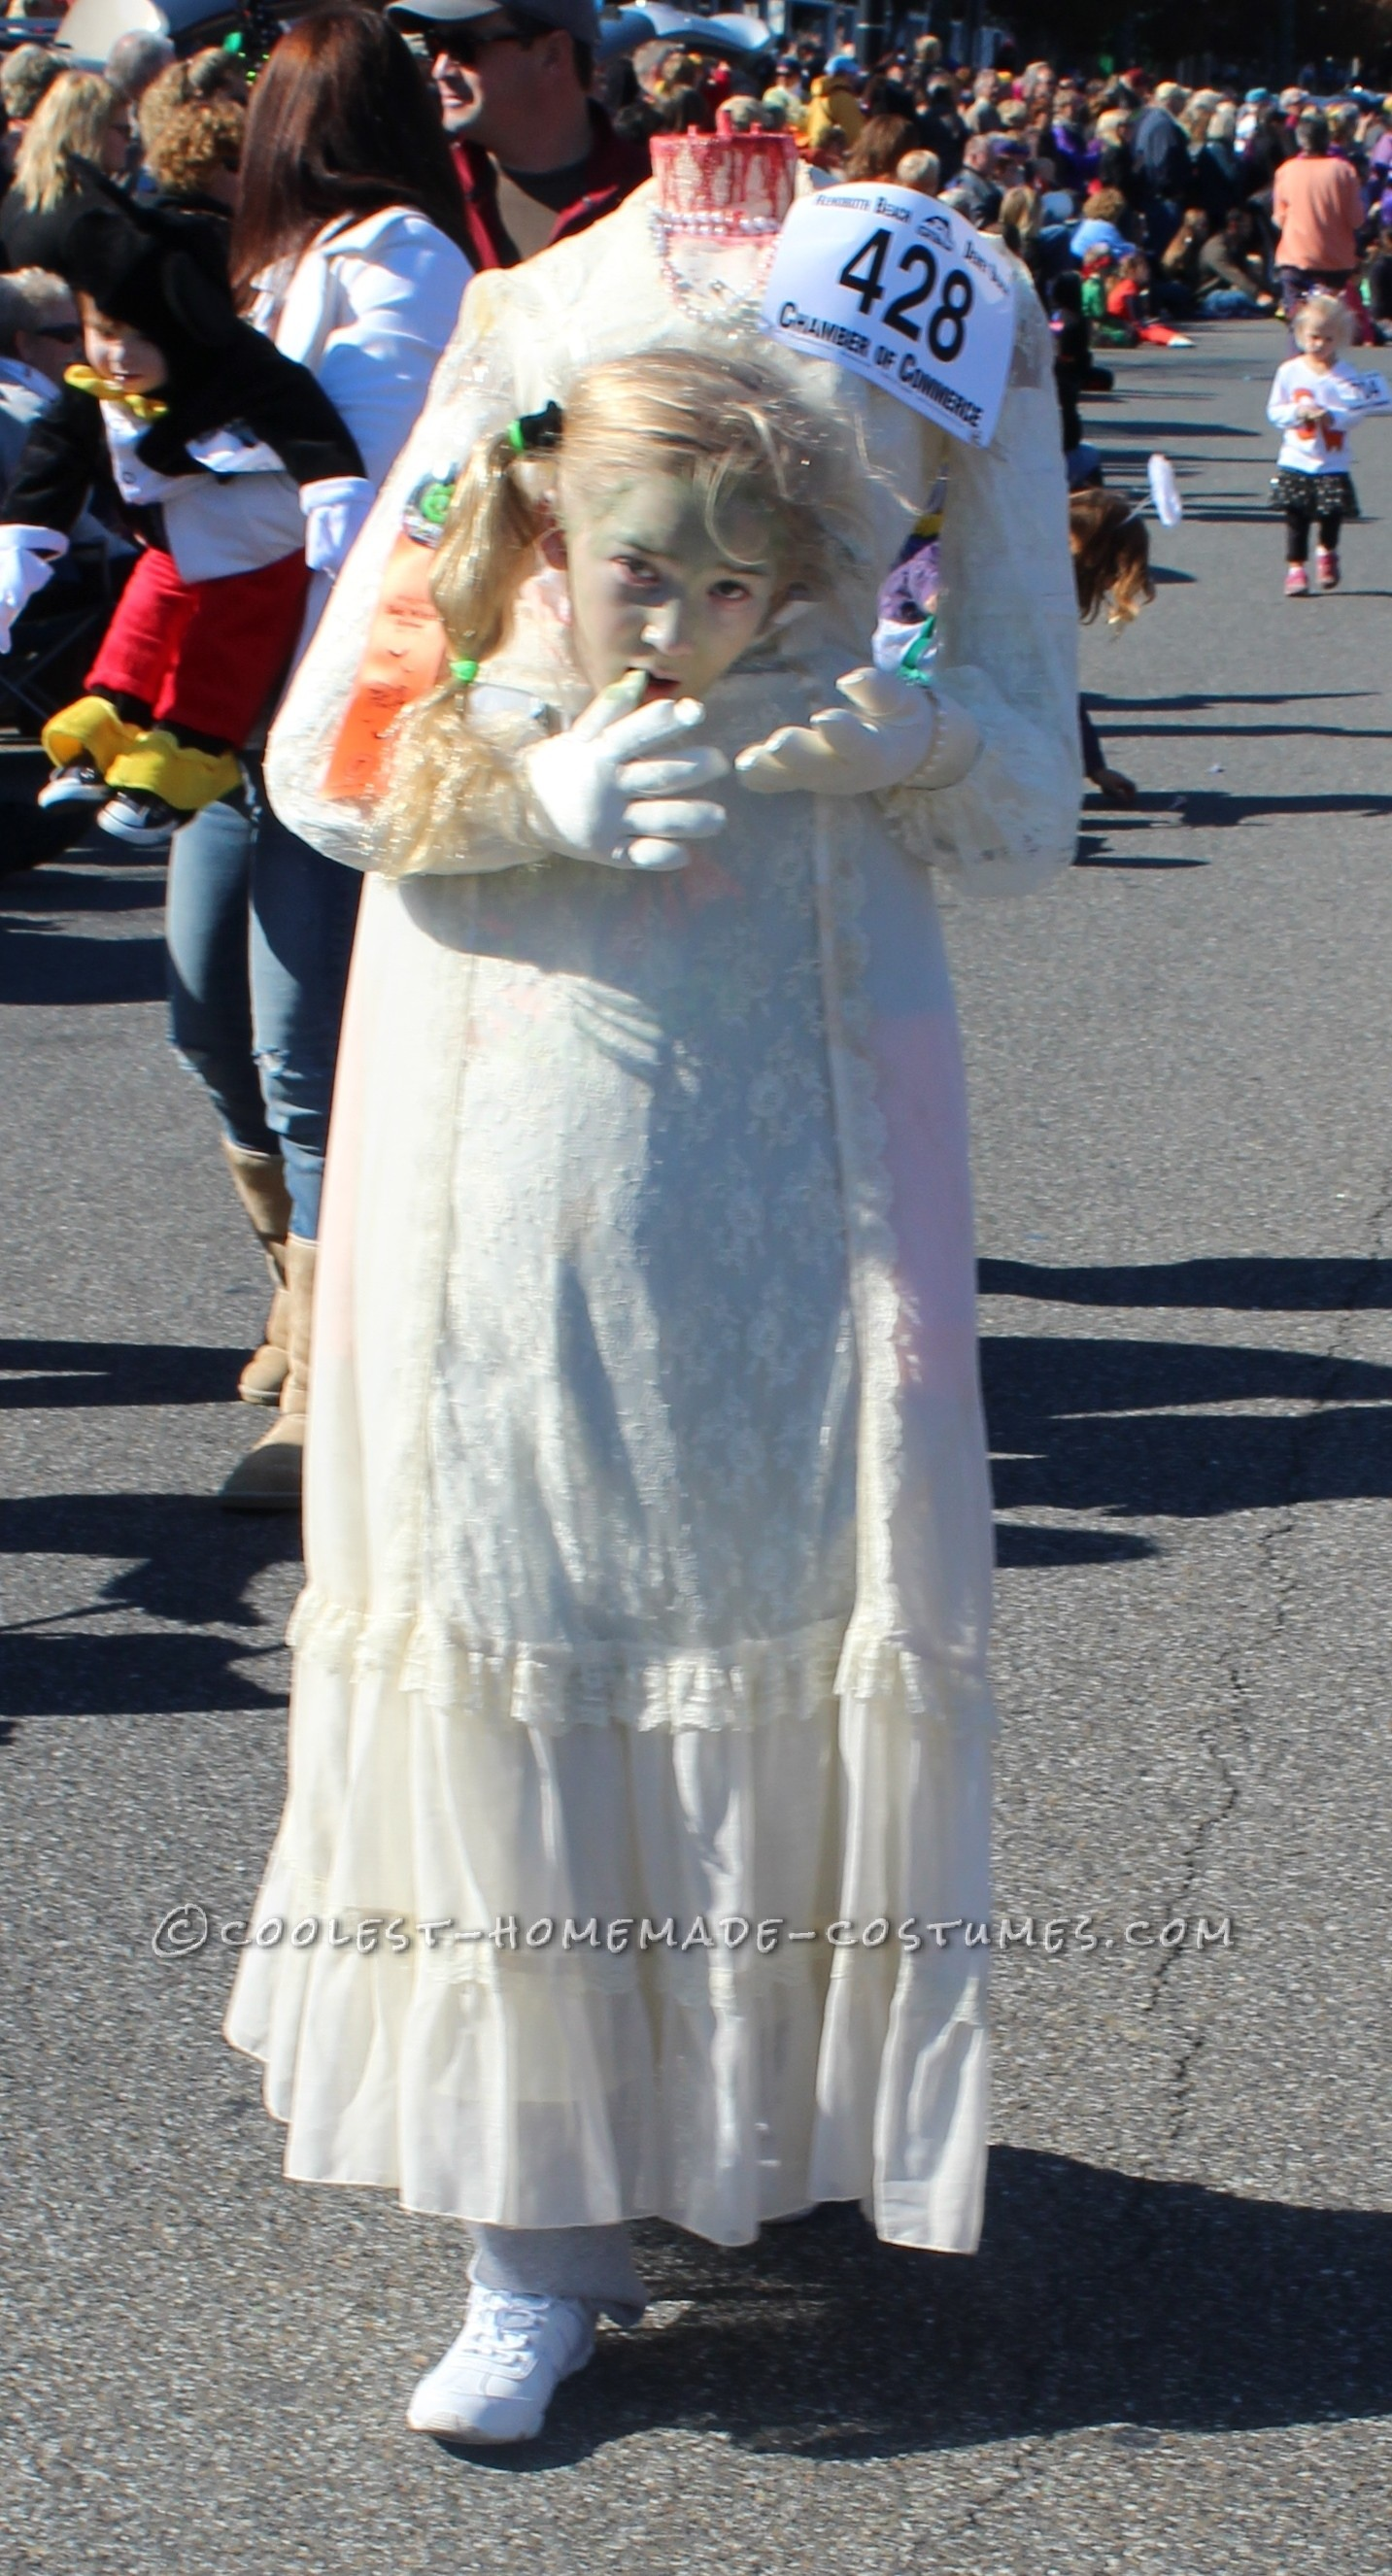 Cool Headless Bride Halloween Costume for a Girl